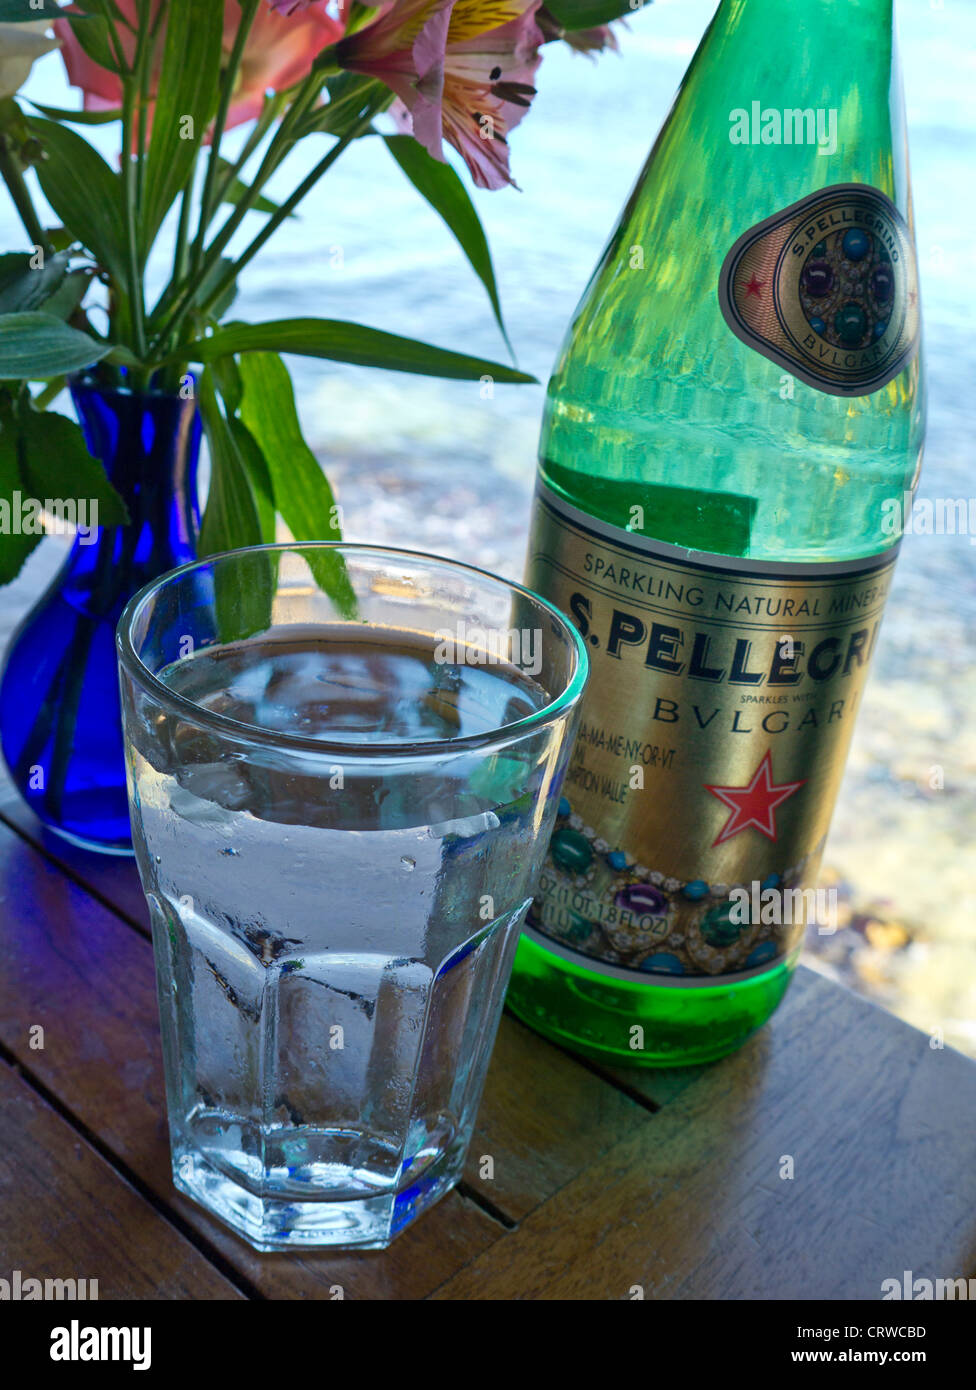 Pellegrino Bulgari luxury bottled water and glass on floral restaurant table with sea view - Stock Image